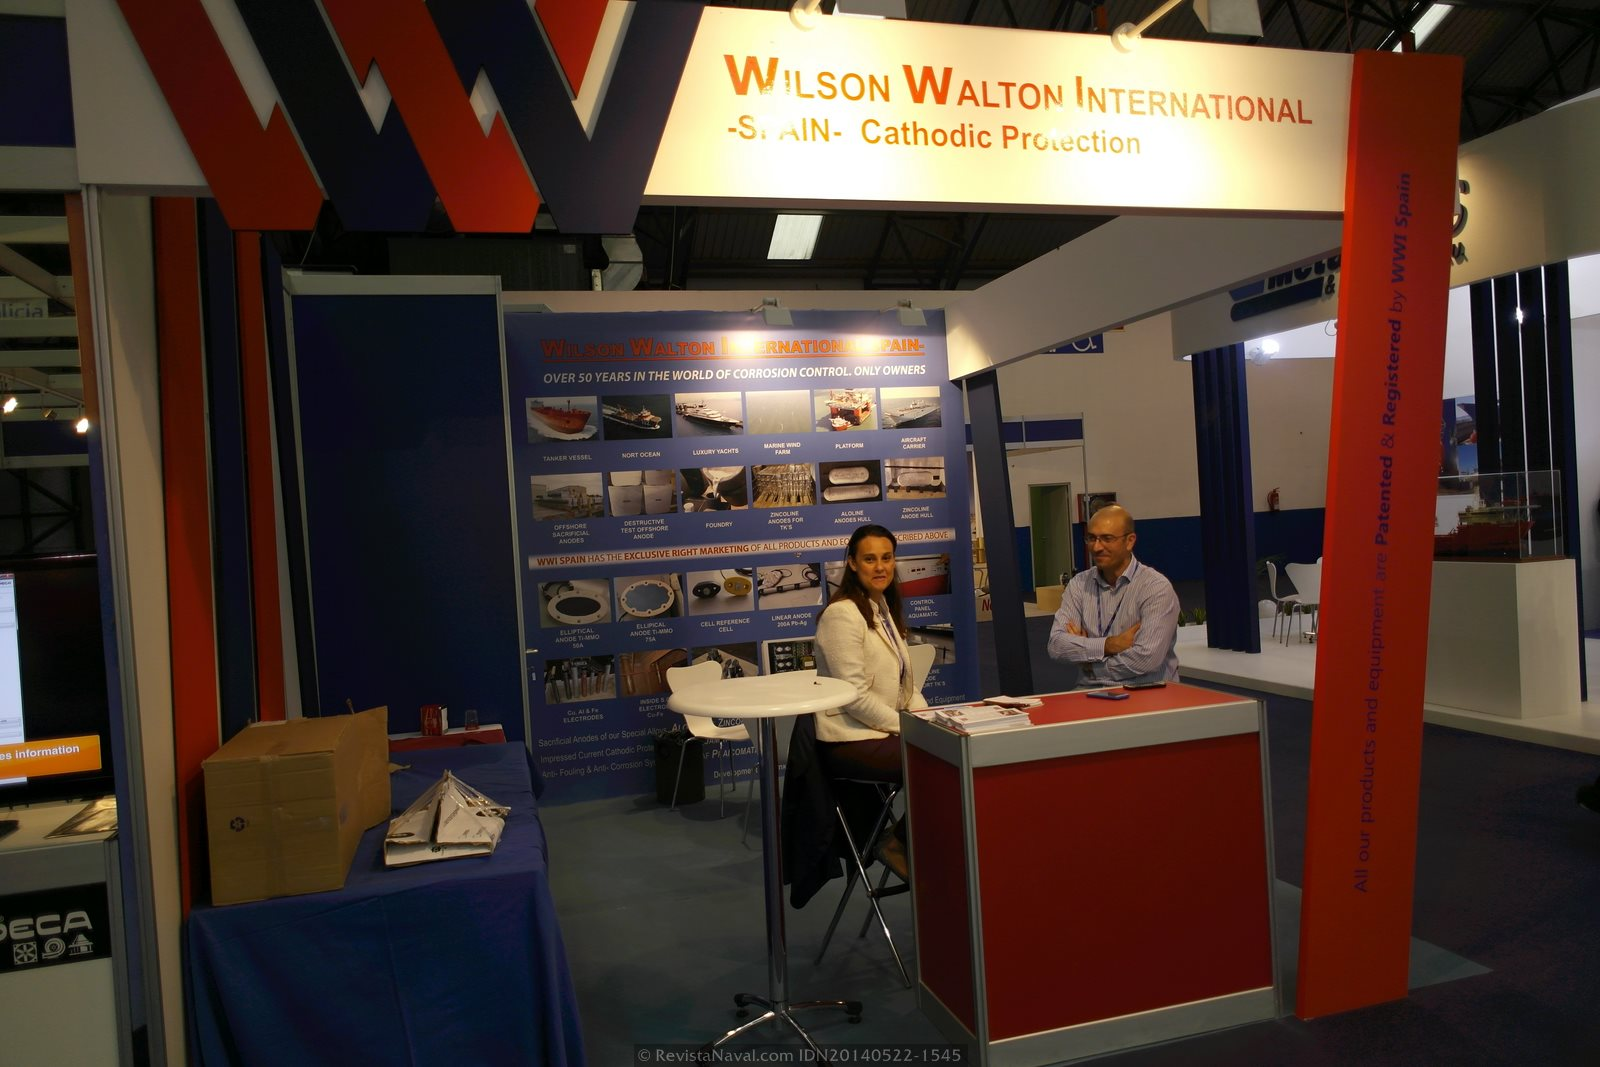 Estand de Wilson Walton International (Foto: Revista Naval)